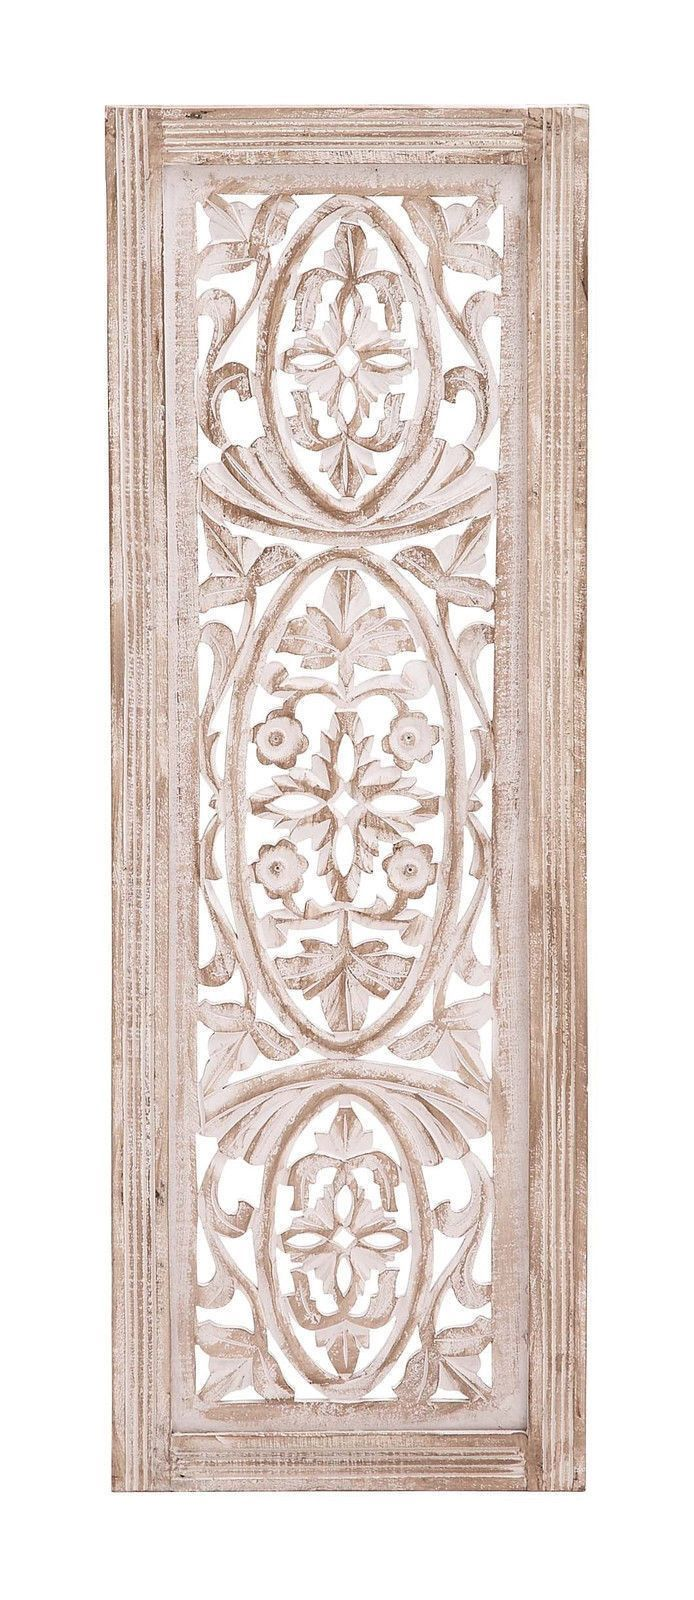 Carved Wood Wall Art Panel Shabby